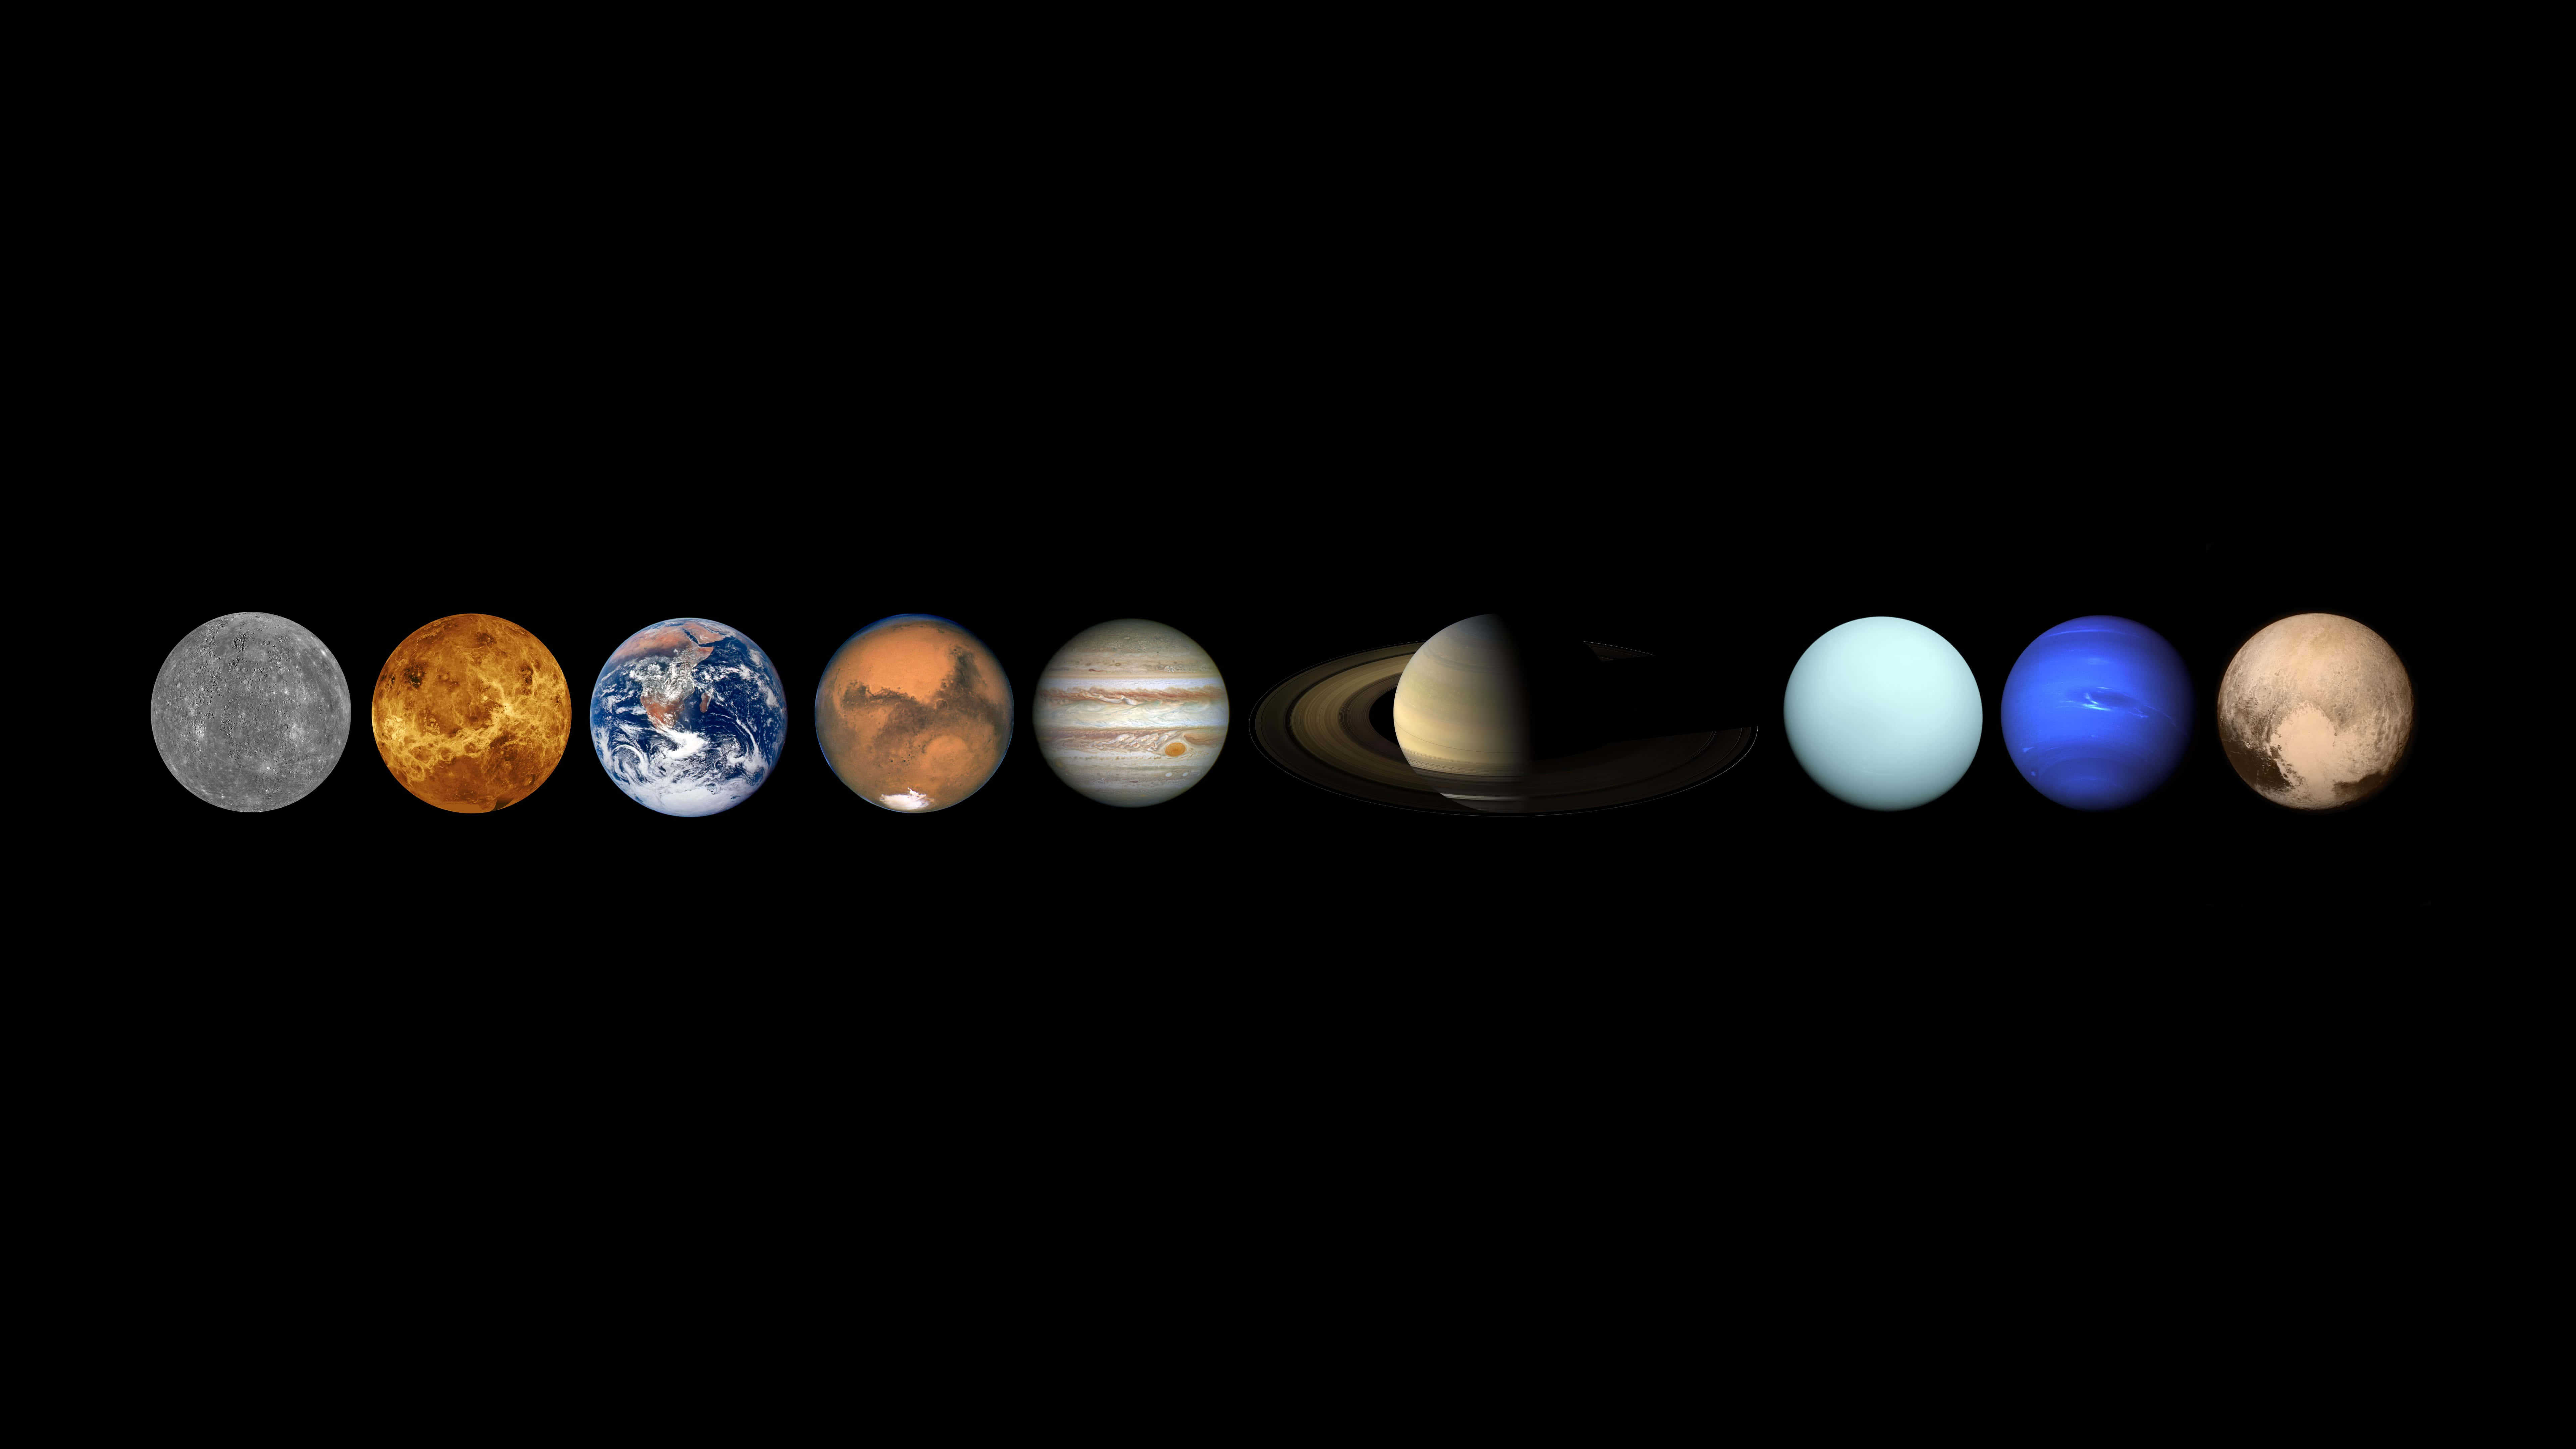 planets in our solar system uhd 8k wallpaper